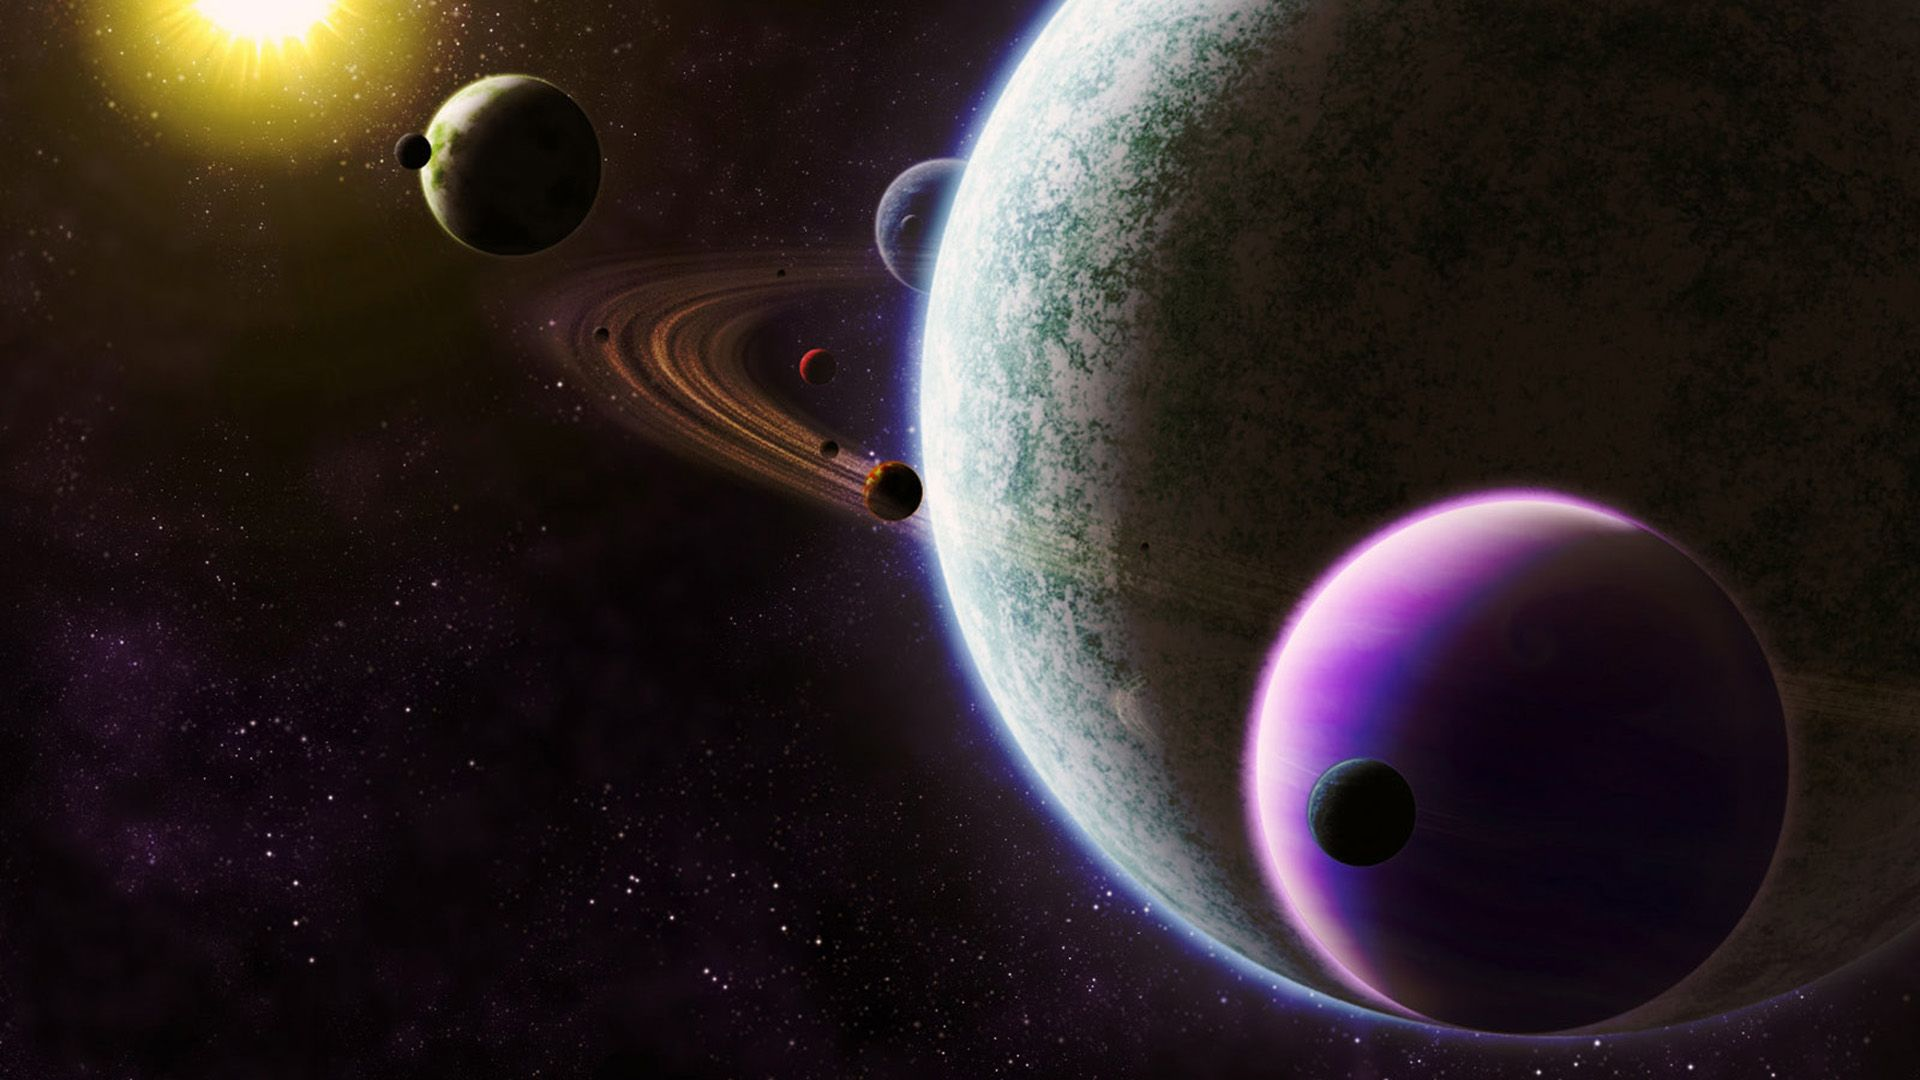 Planets Orbits Planets Solar System Wallpaper Space Art Wallpaper